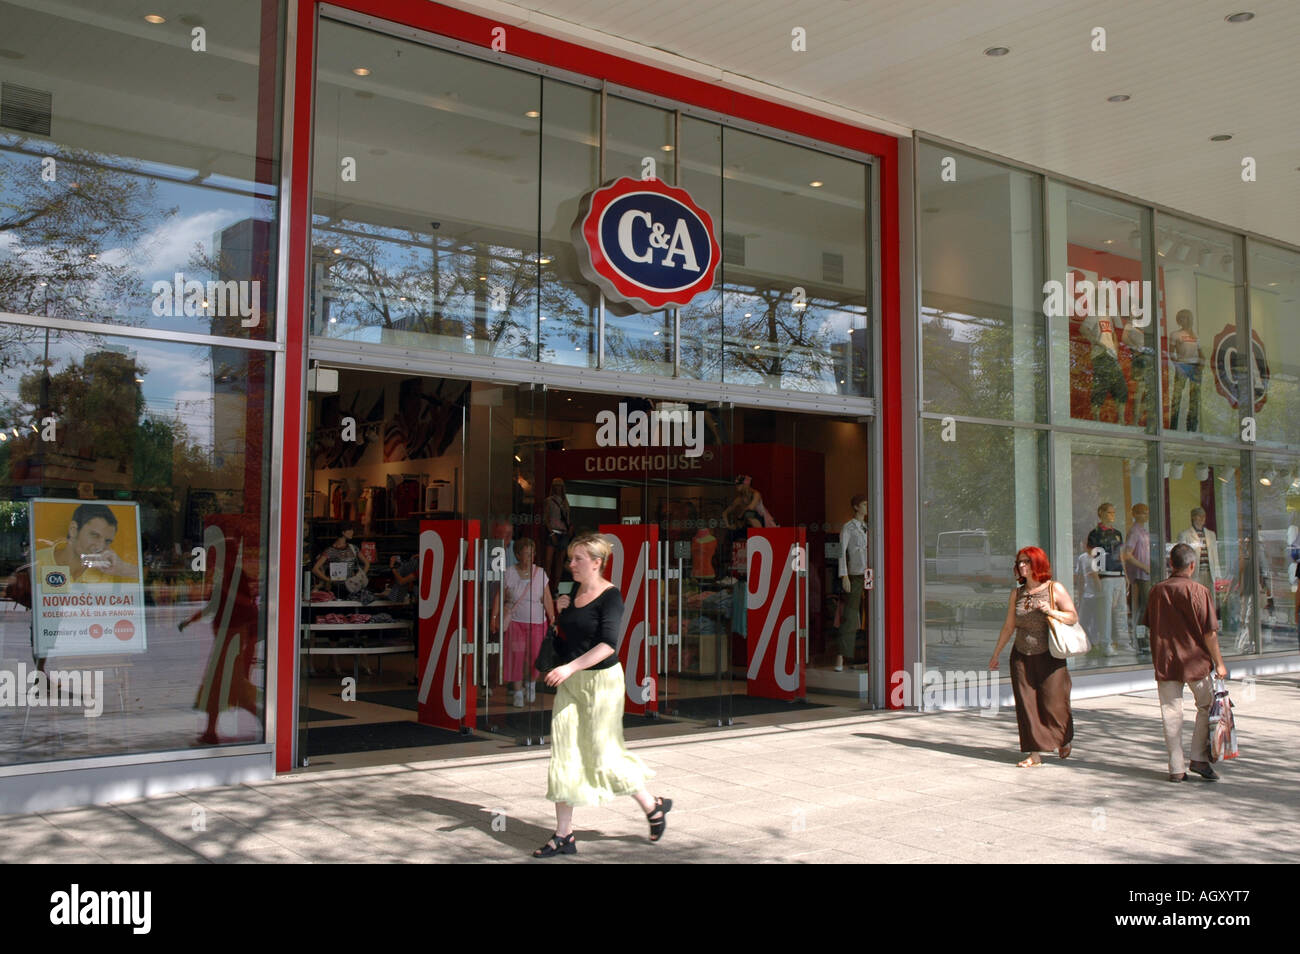 C A Clothes Shop In Warsaw Poland Stock Photo Royalty Free Image 8173254 Alamy